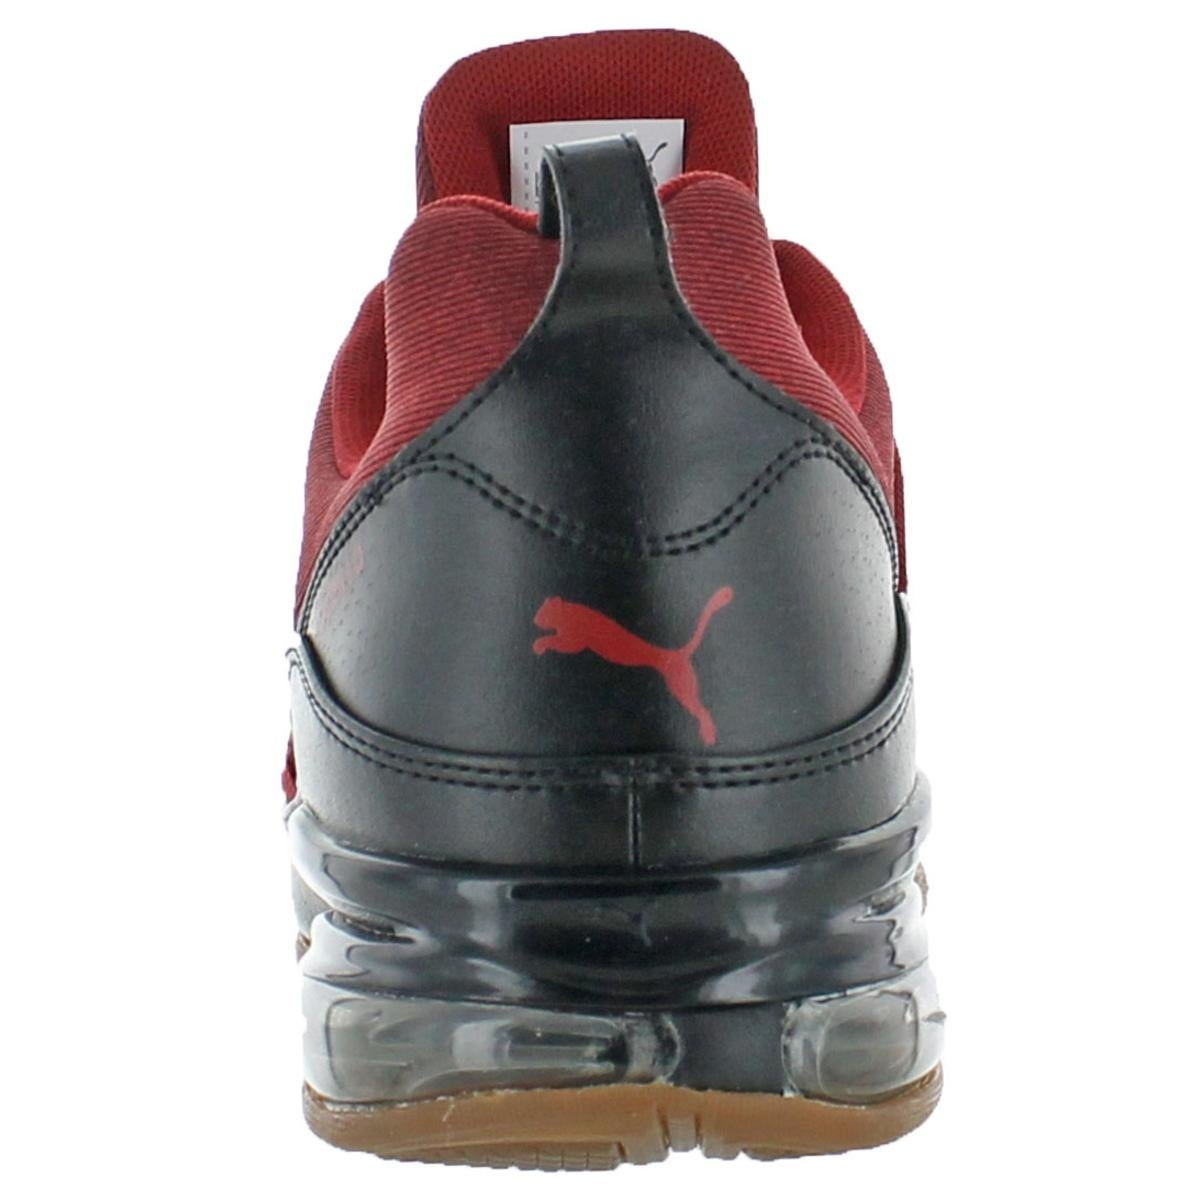 3a9f131e655 ... Shop Puma Mens Cell Regulate Nature Tech Running Shoes Athletic  SoftFoam - Free Shipping On Orders ...